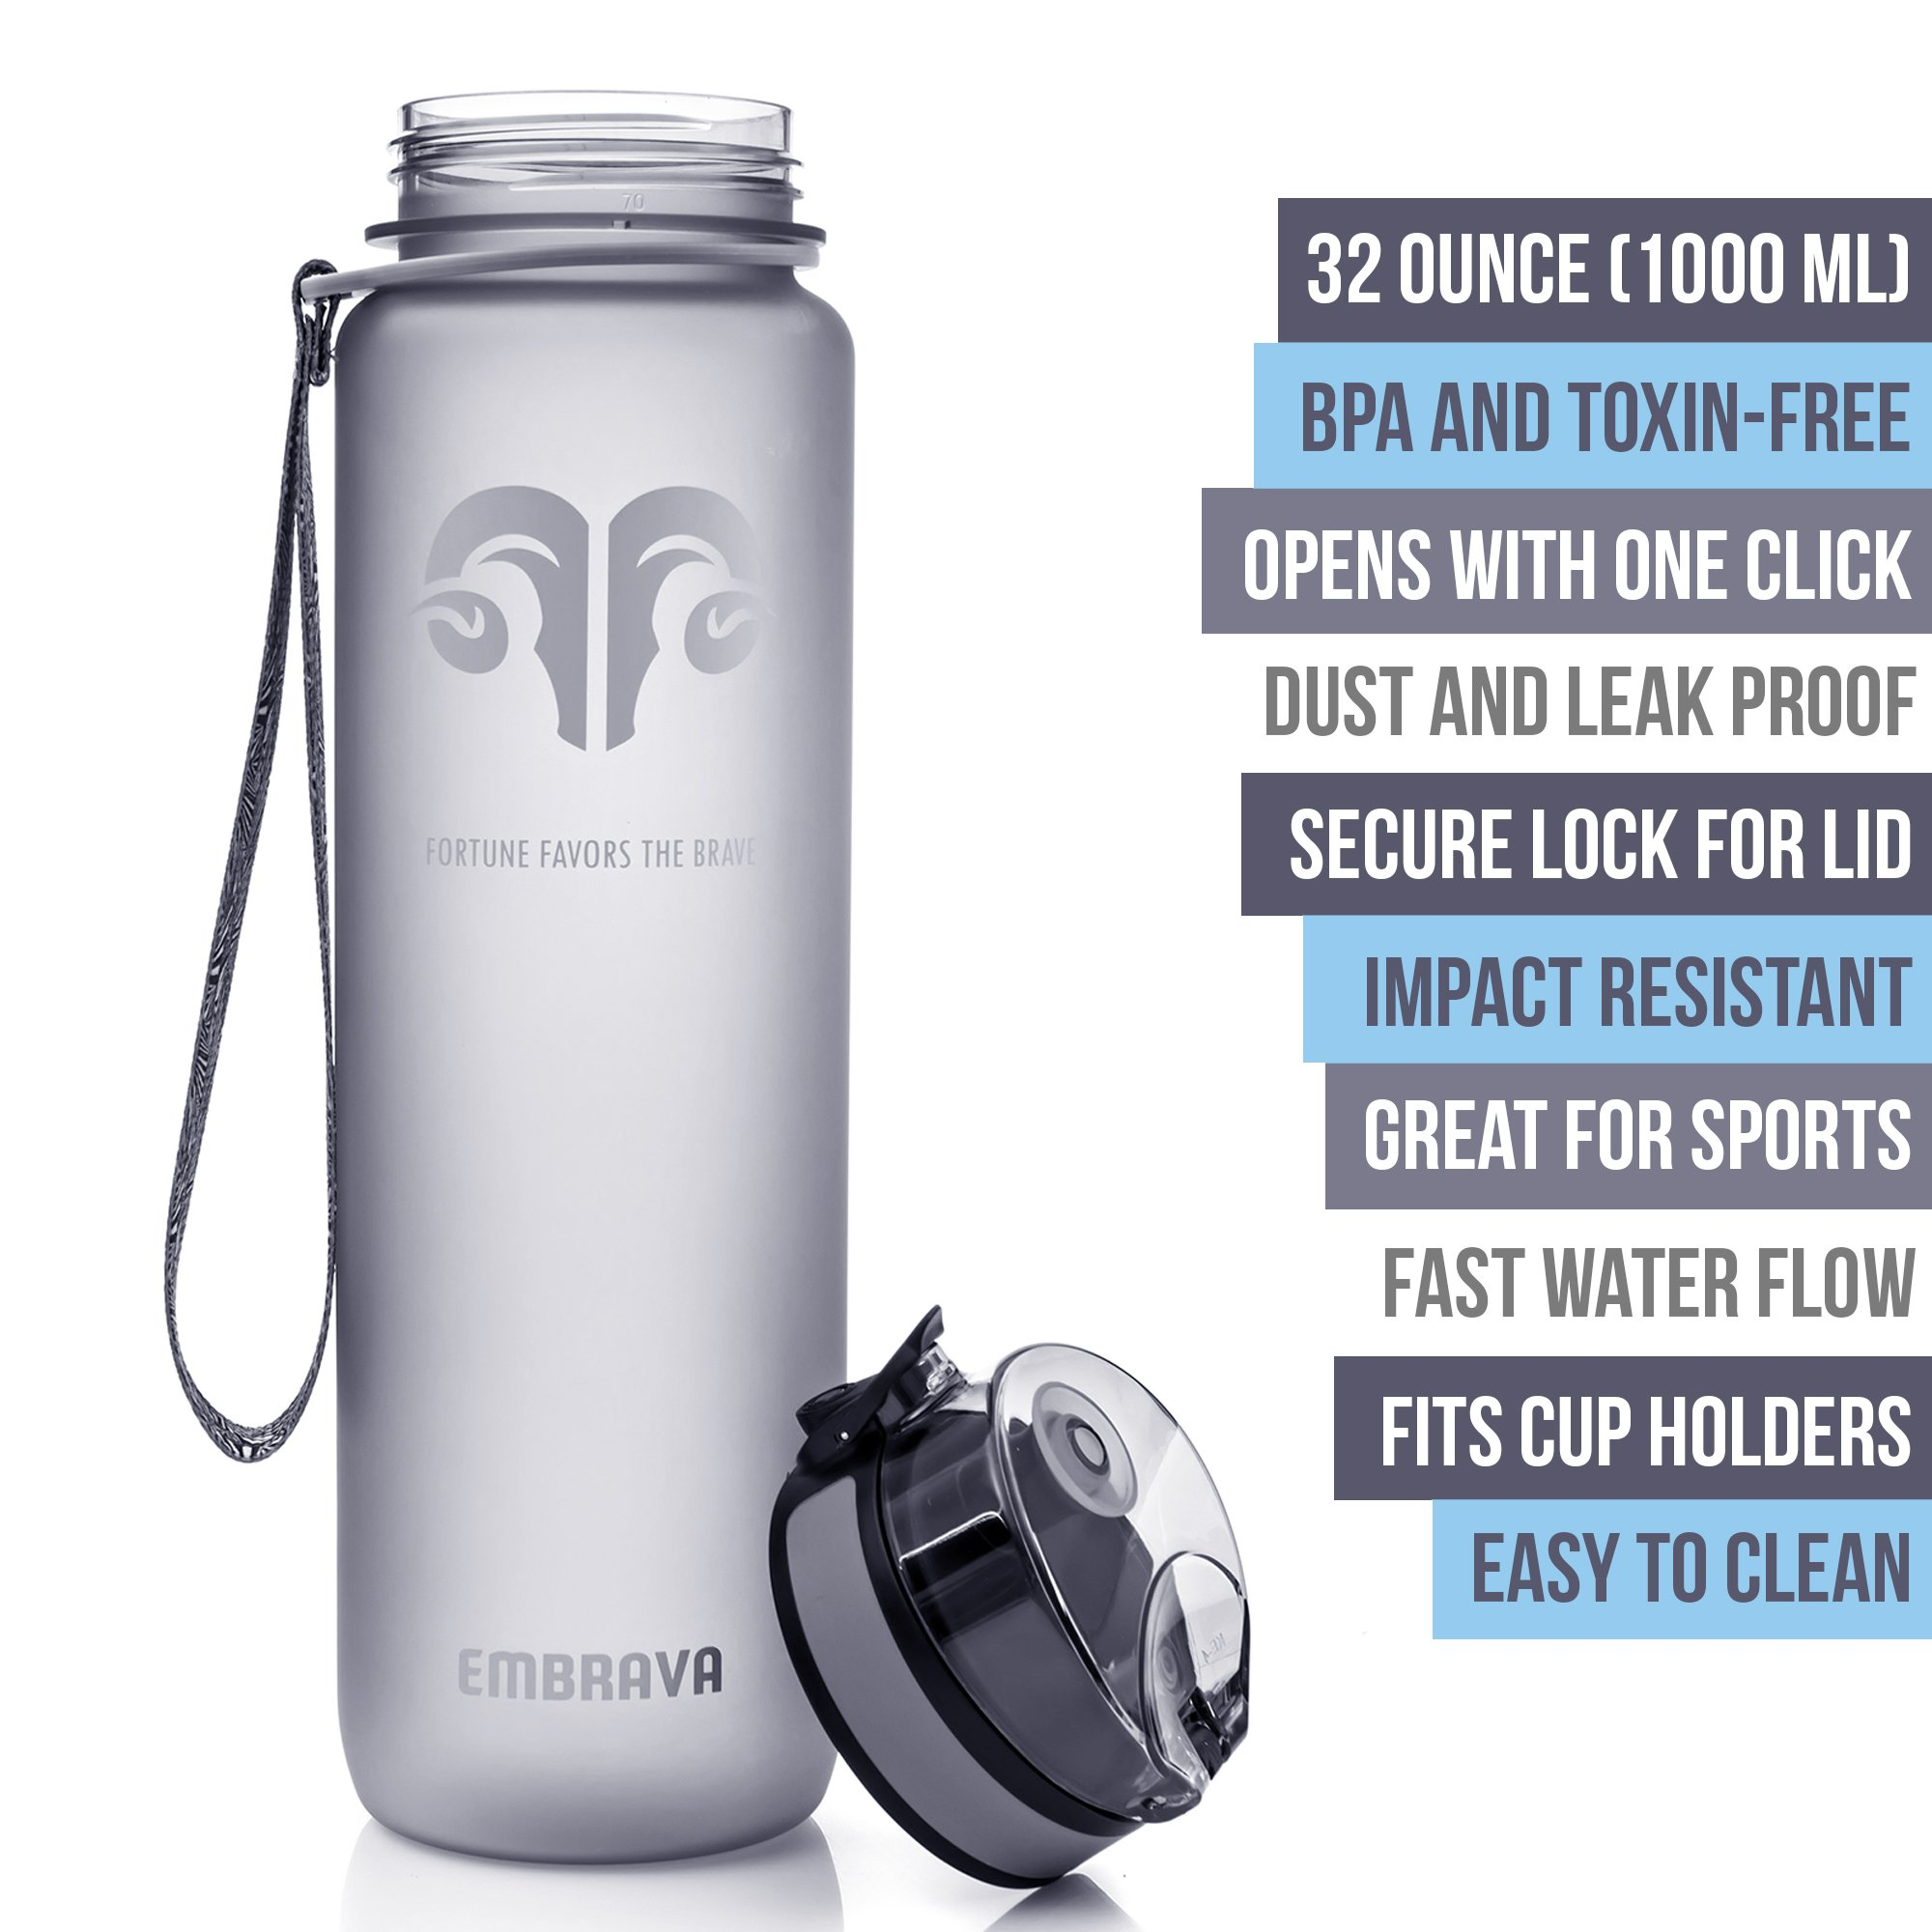 Best Sports Water Bottle - 32oz Large - Fast Flow, Flip Top Leak Proof Lid w/ One Click Open - Non-Toxic BPA Free & Eco-Friendly Tritan Co-Polyester Plastic (GRAY) by Embrava (Image #2)